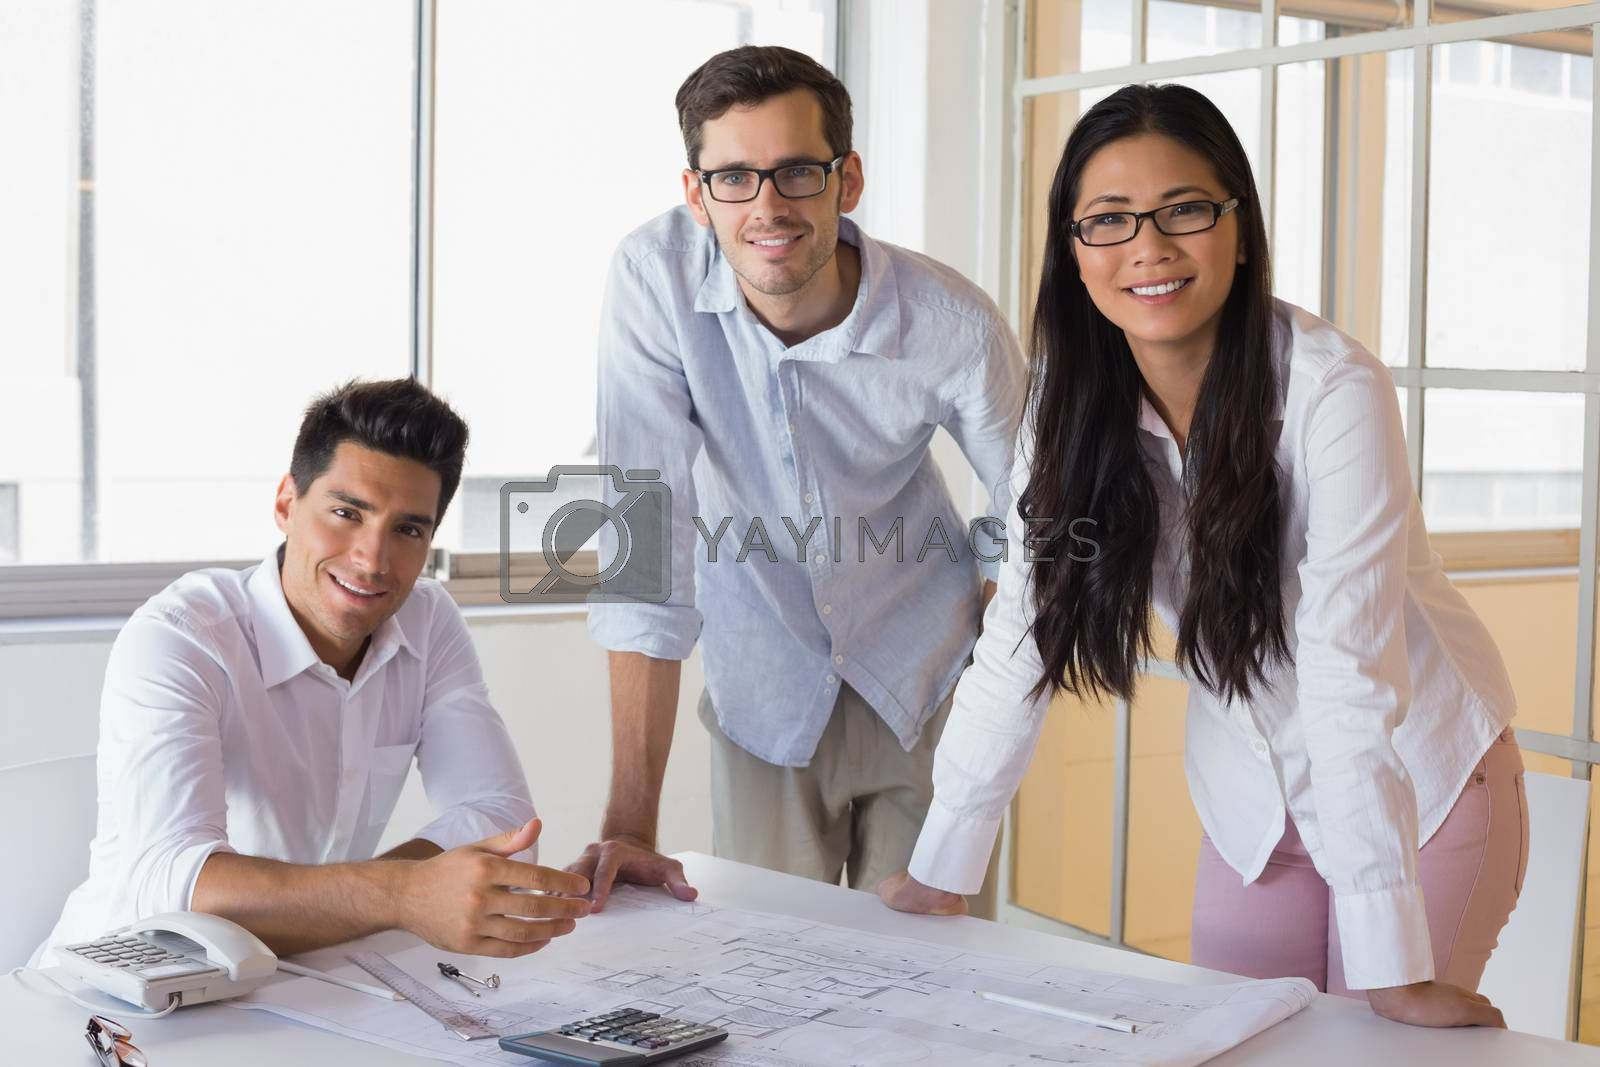 Royalty free image of Casual architecture team working together smiling at camera by Wavebreakmedia